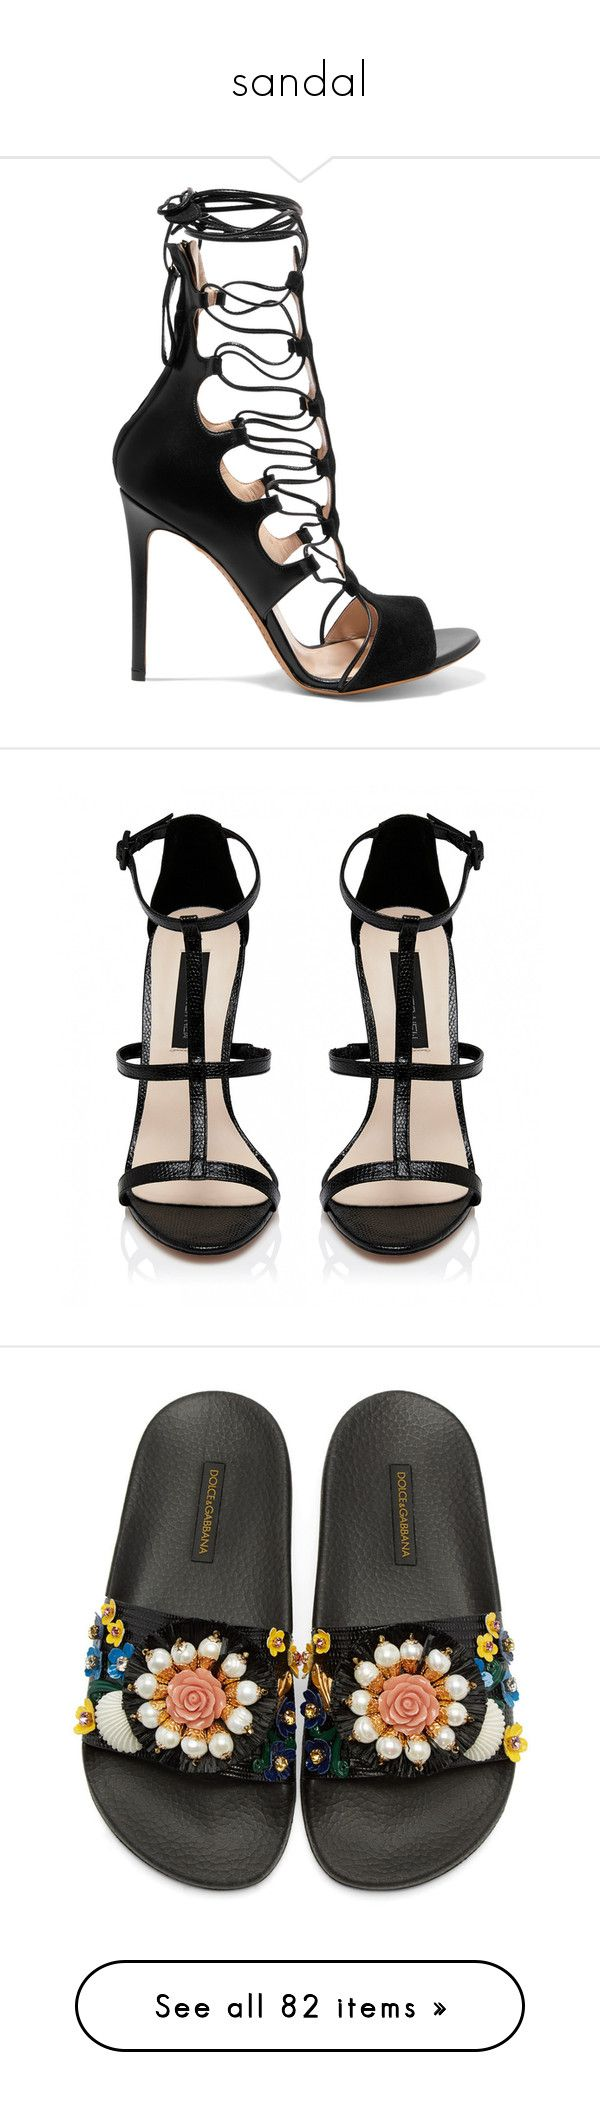 """""""sandal"""" by jordan-mobley ❤ liked on Polyvore featuring shoes, sandals, black, black rainbow sandals, suede lace up sandals, rainbow leather sandals, high heel sandals, lace up high heel sandals, heels and sapatos"""